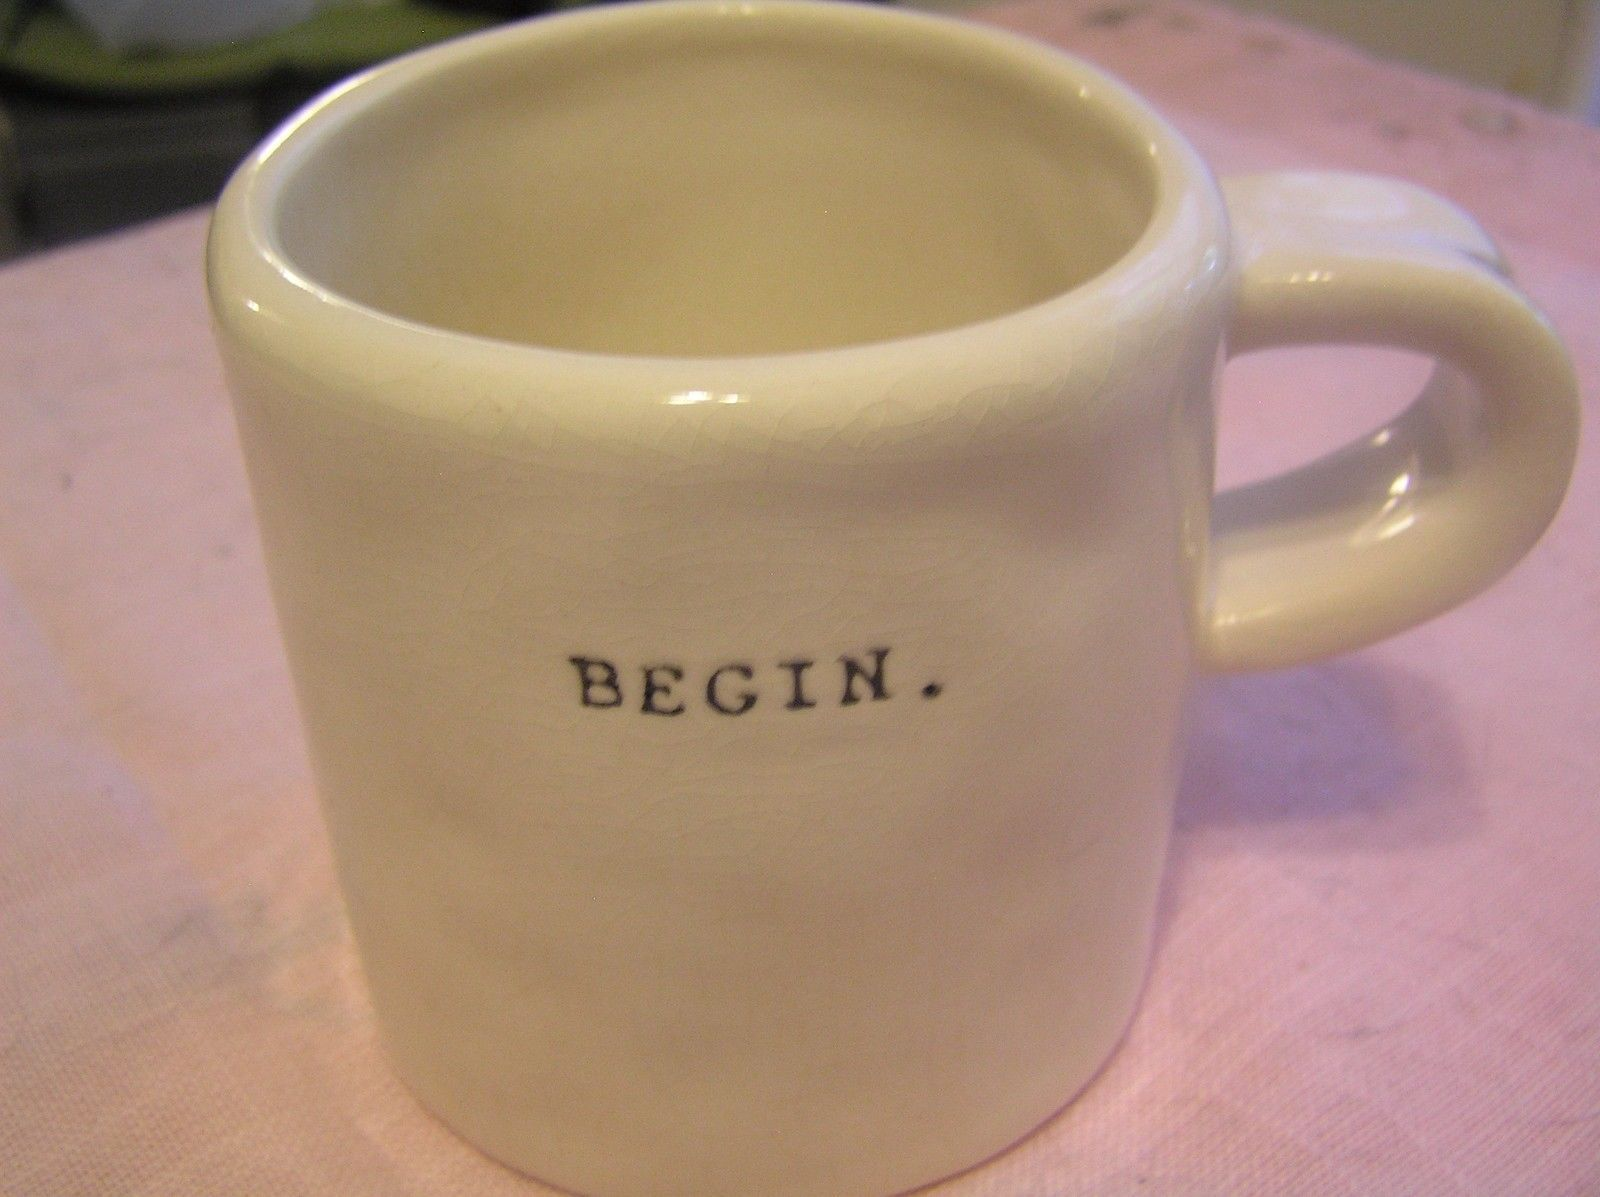 Item Coffee Tea Mug Cup Brand Rae Dunn Magenta Model Begin Is Offered Without